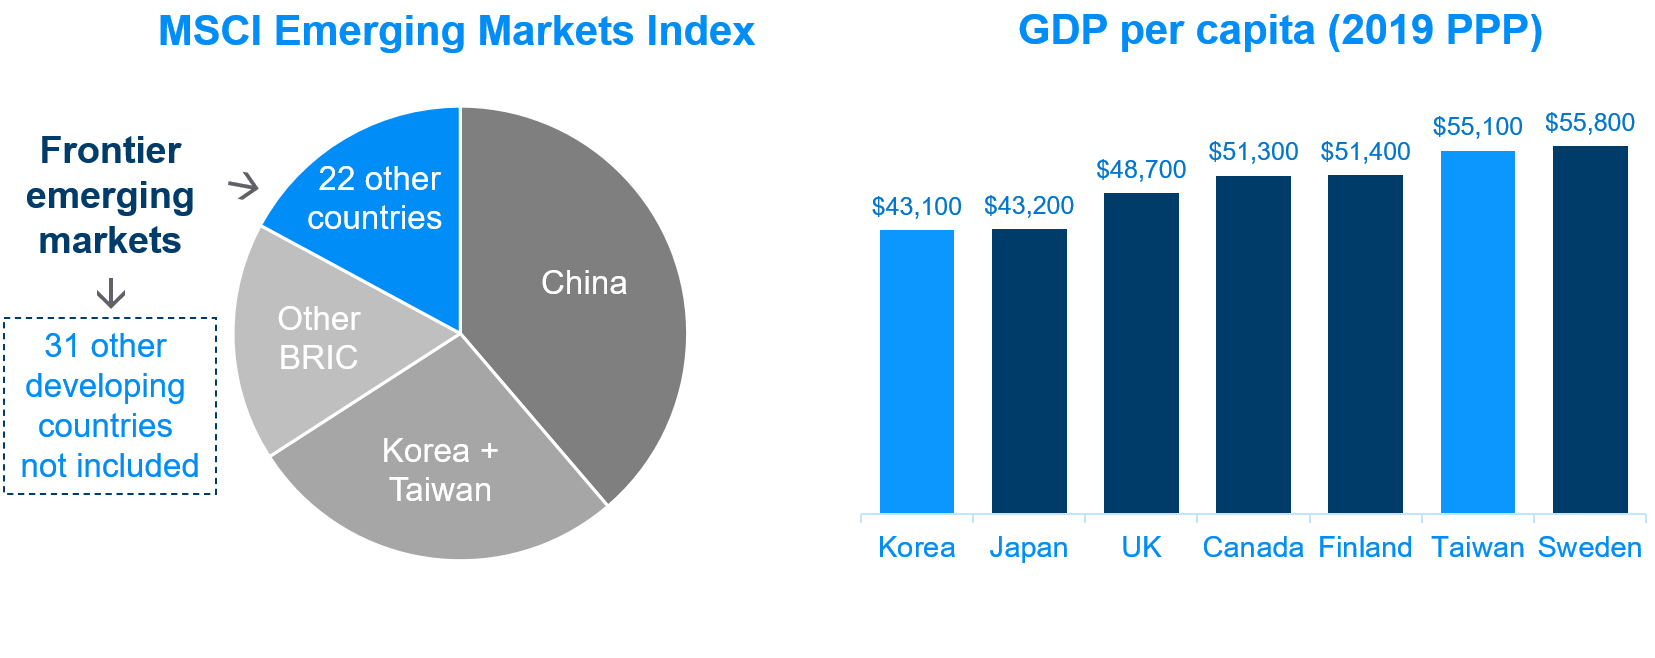 Pie chart of MSCI Emerging Markets Index on the left. On the right GBD per capita of Korea, Japan, UK, Canada, Finland, Taiwan and Sweden.